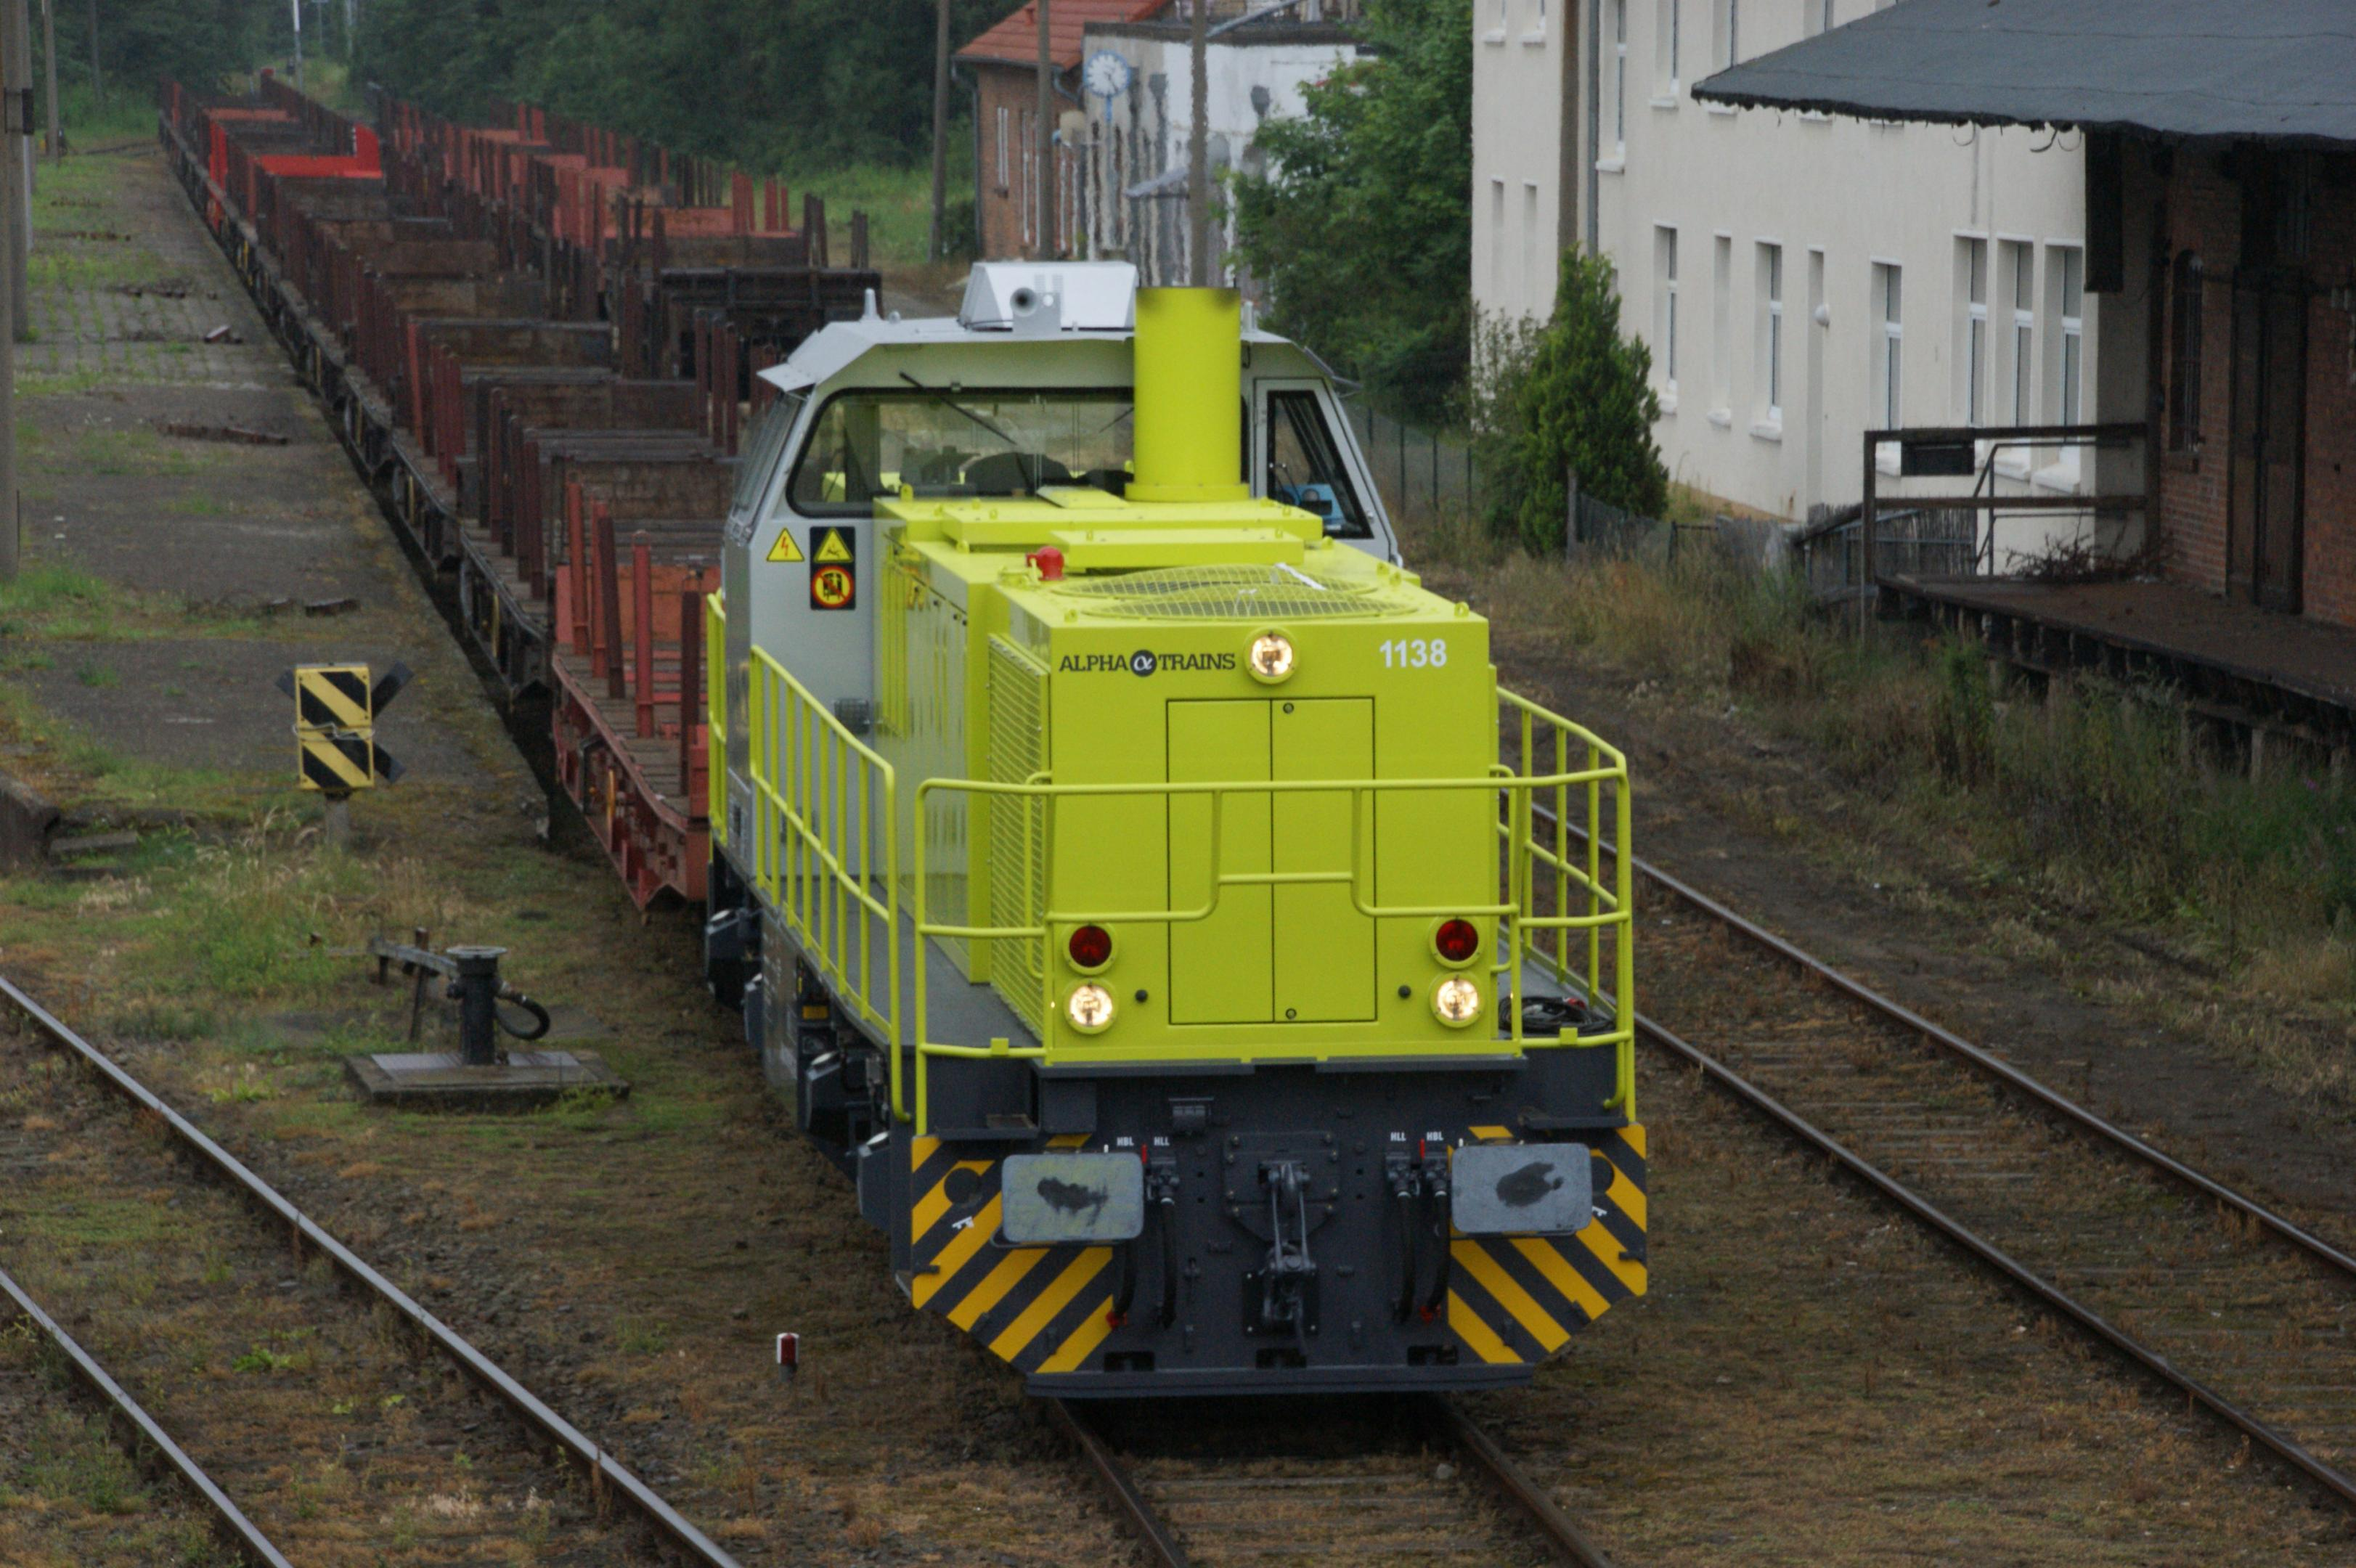 Locomotives | G1206_ALPHA_TRAINS_DESIGN_4_BIG.JPG | © Vossloh/Caperpillar/Alpha Trains Belgium N.V.